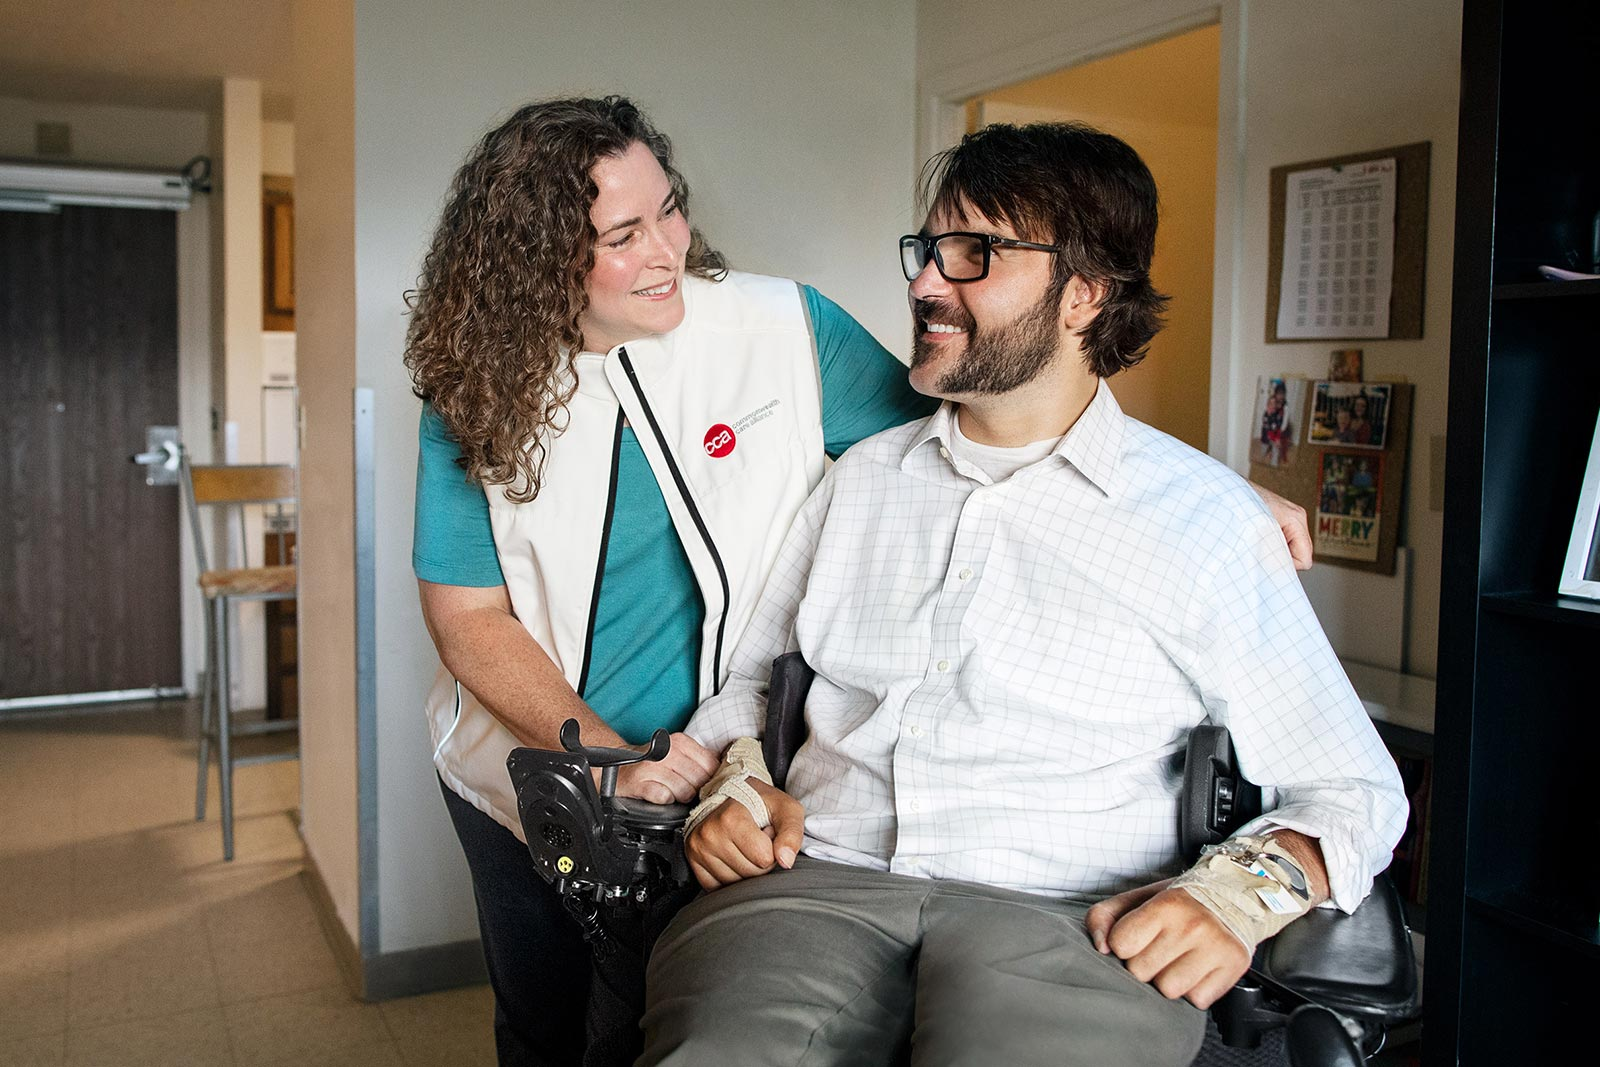 Disabled man in wheelchair smiling in his home with female care partner